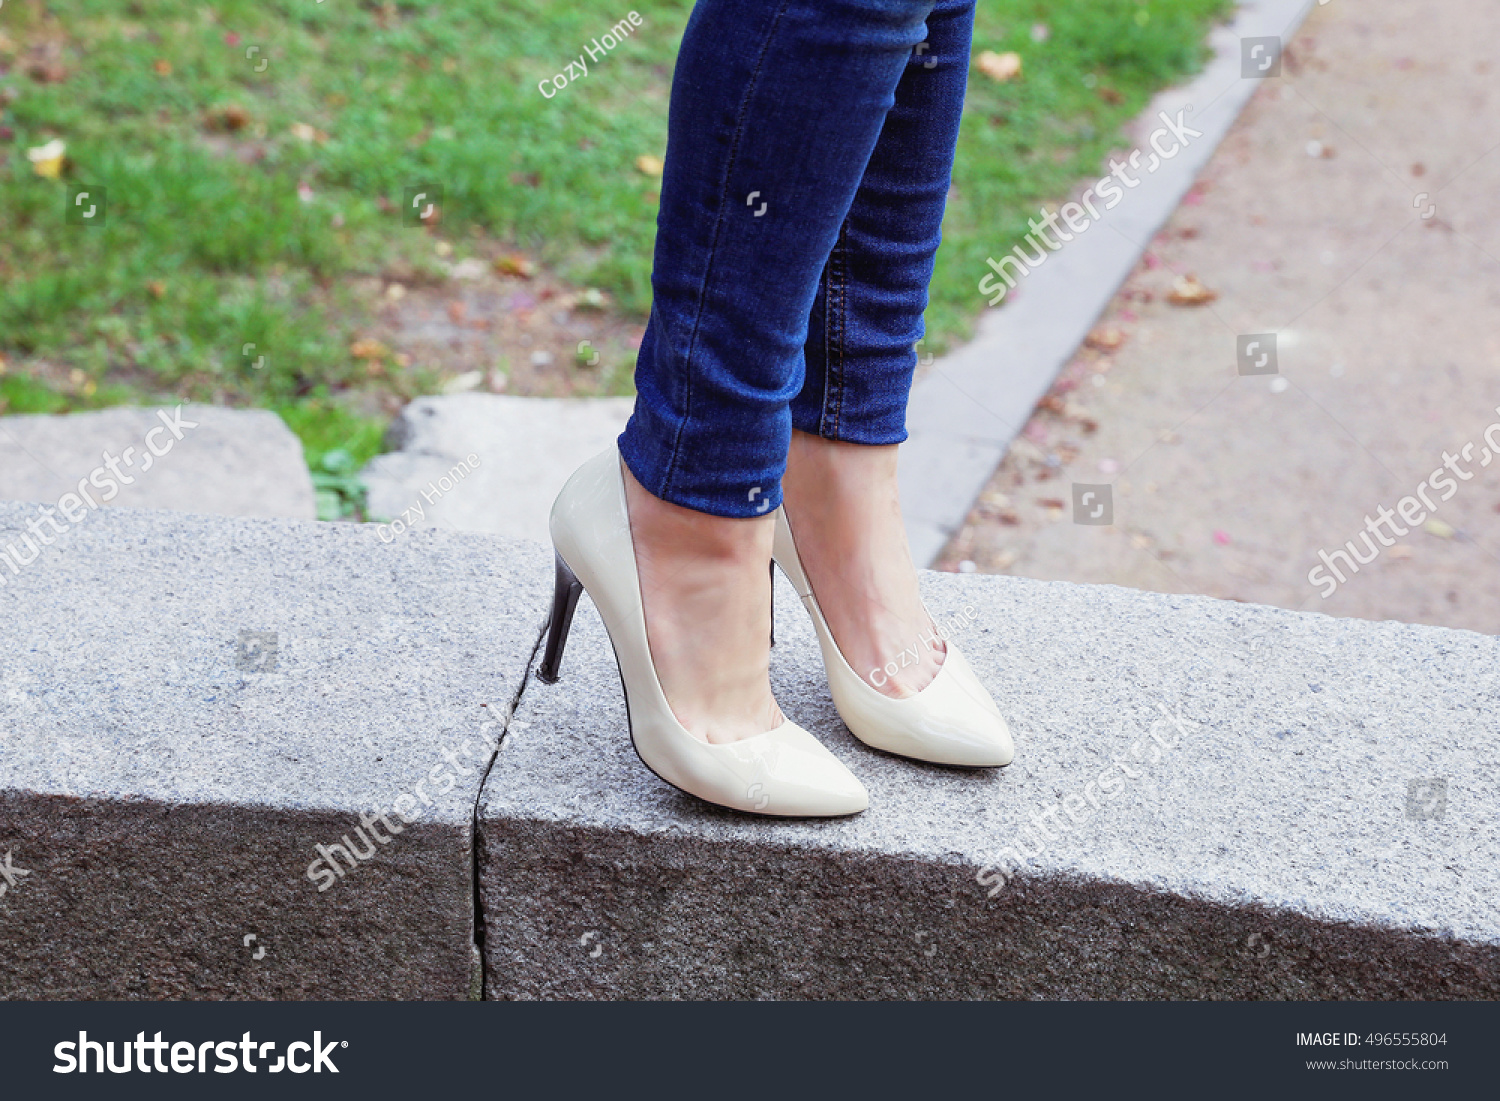 a6e7636f75 Shapely female legs in blue jeans and beige patent leather high-heeled  shoes. Fashionable